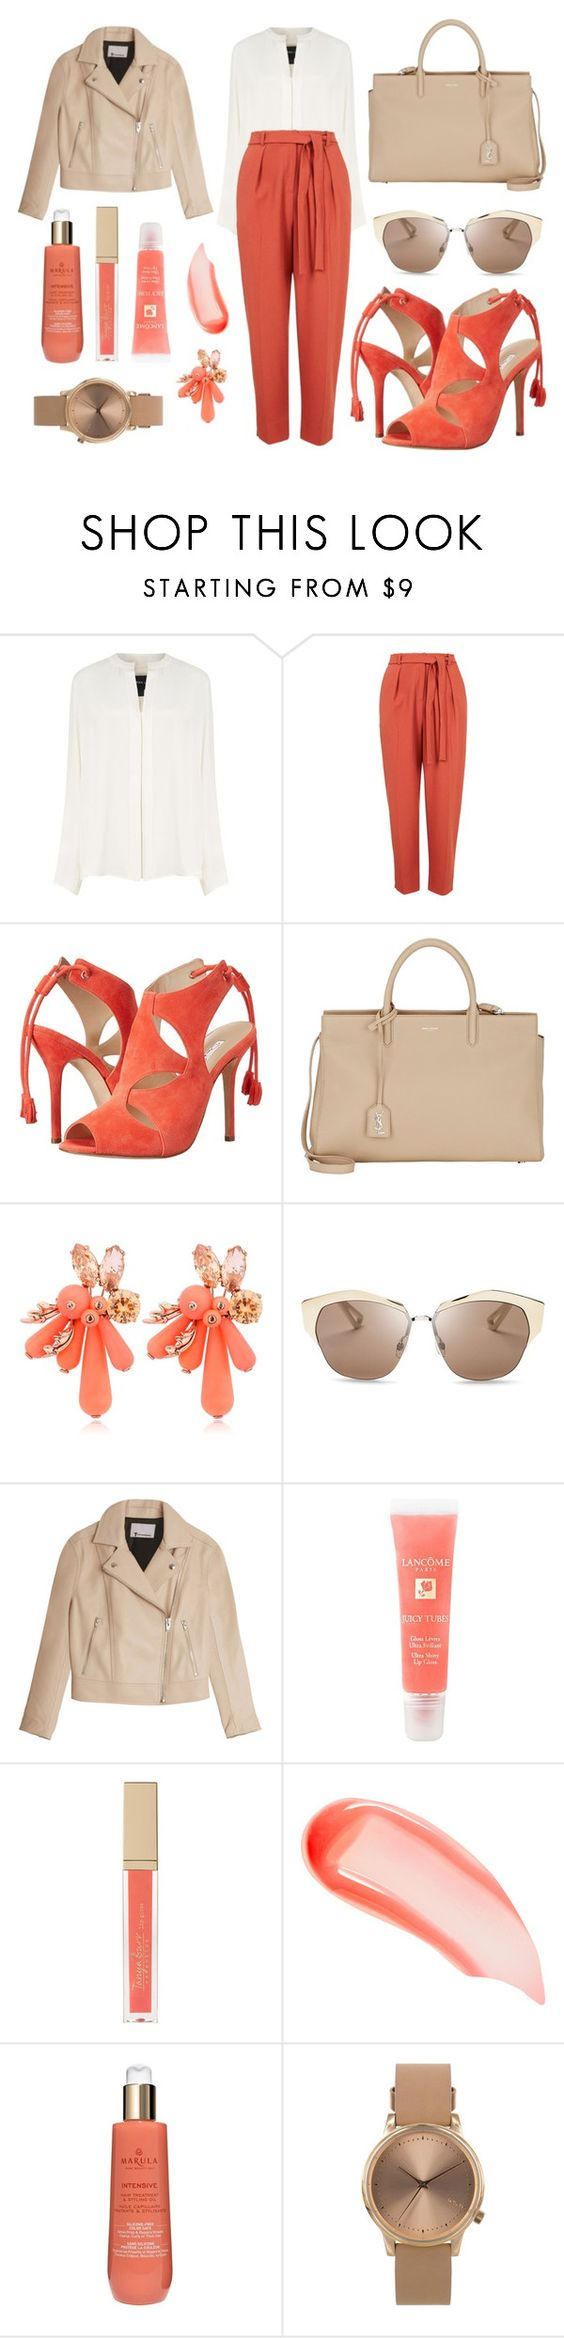 """""""Work day in Rome with my squad"""" by fashionholli ❤ liked on Polyvore featuring Derek Lam, Topshop, Oscar de la Renta, Yves Saint Laurent, Ek Thongprasert, Christian Dior, T By Alexander Wang, Lancôme, NARS Cosmetics and Marula"""